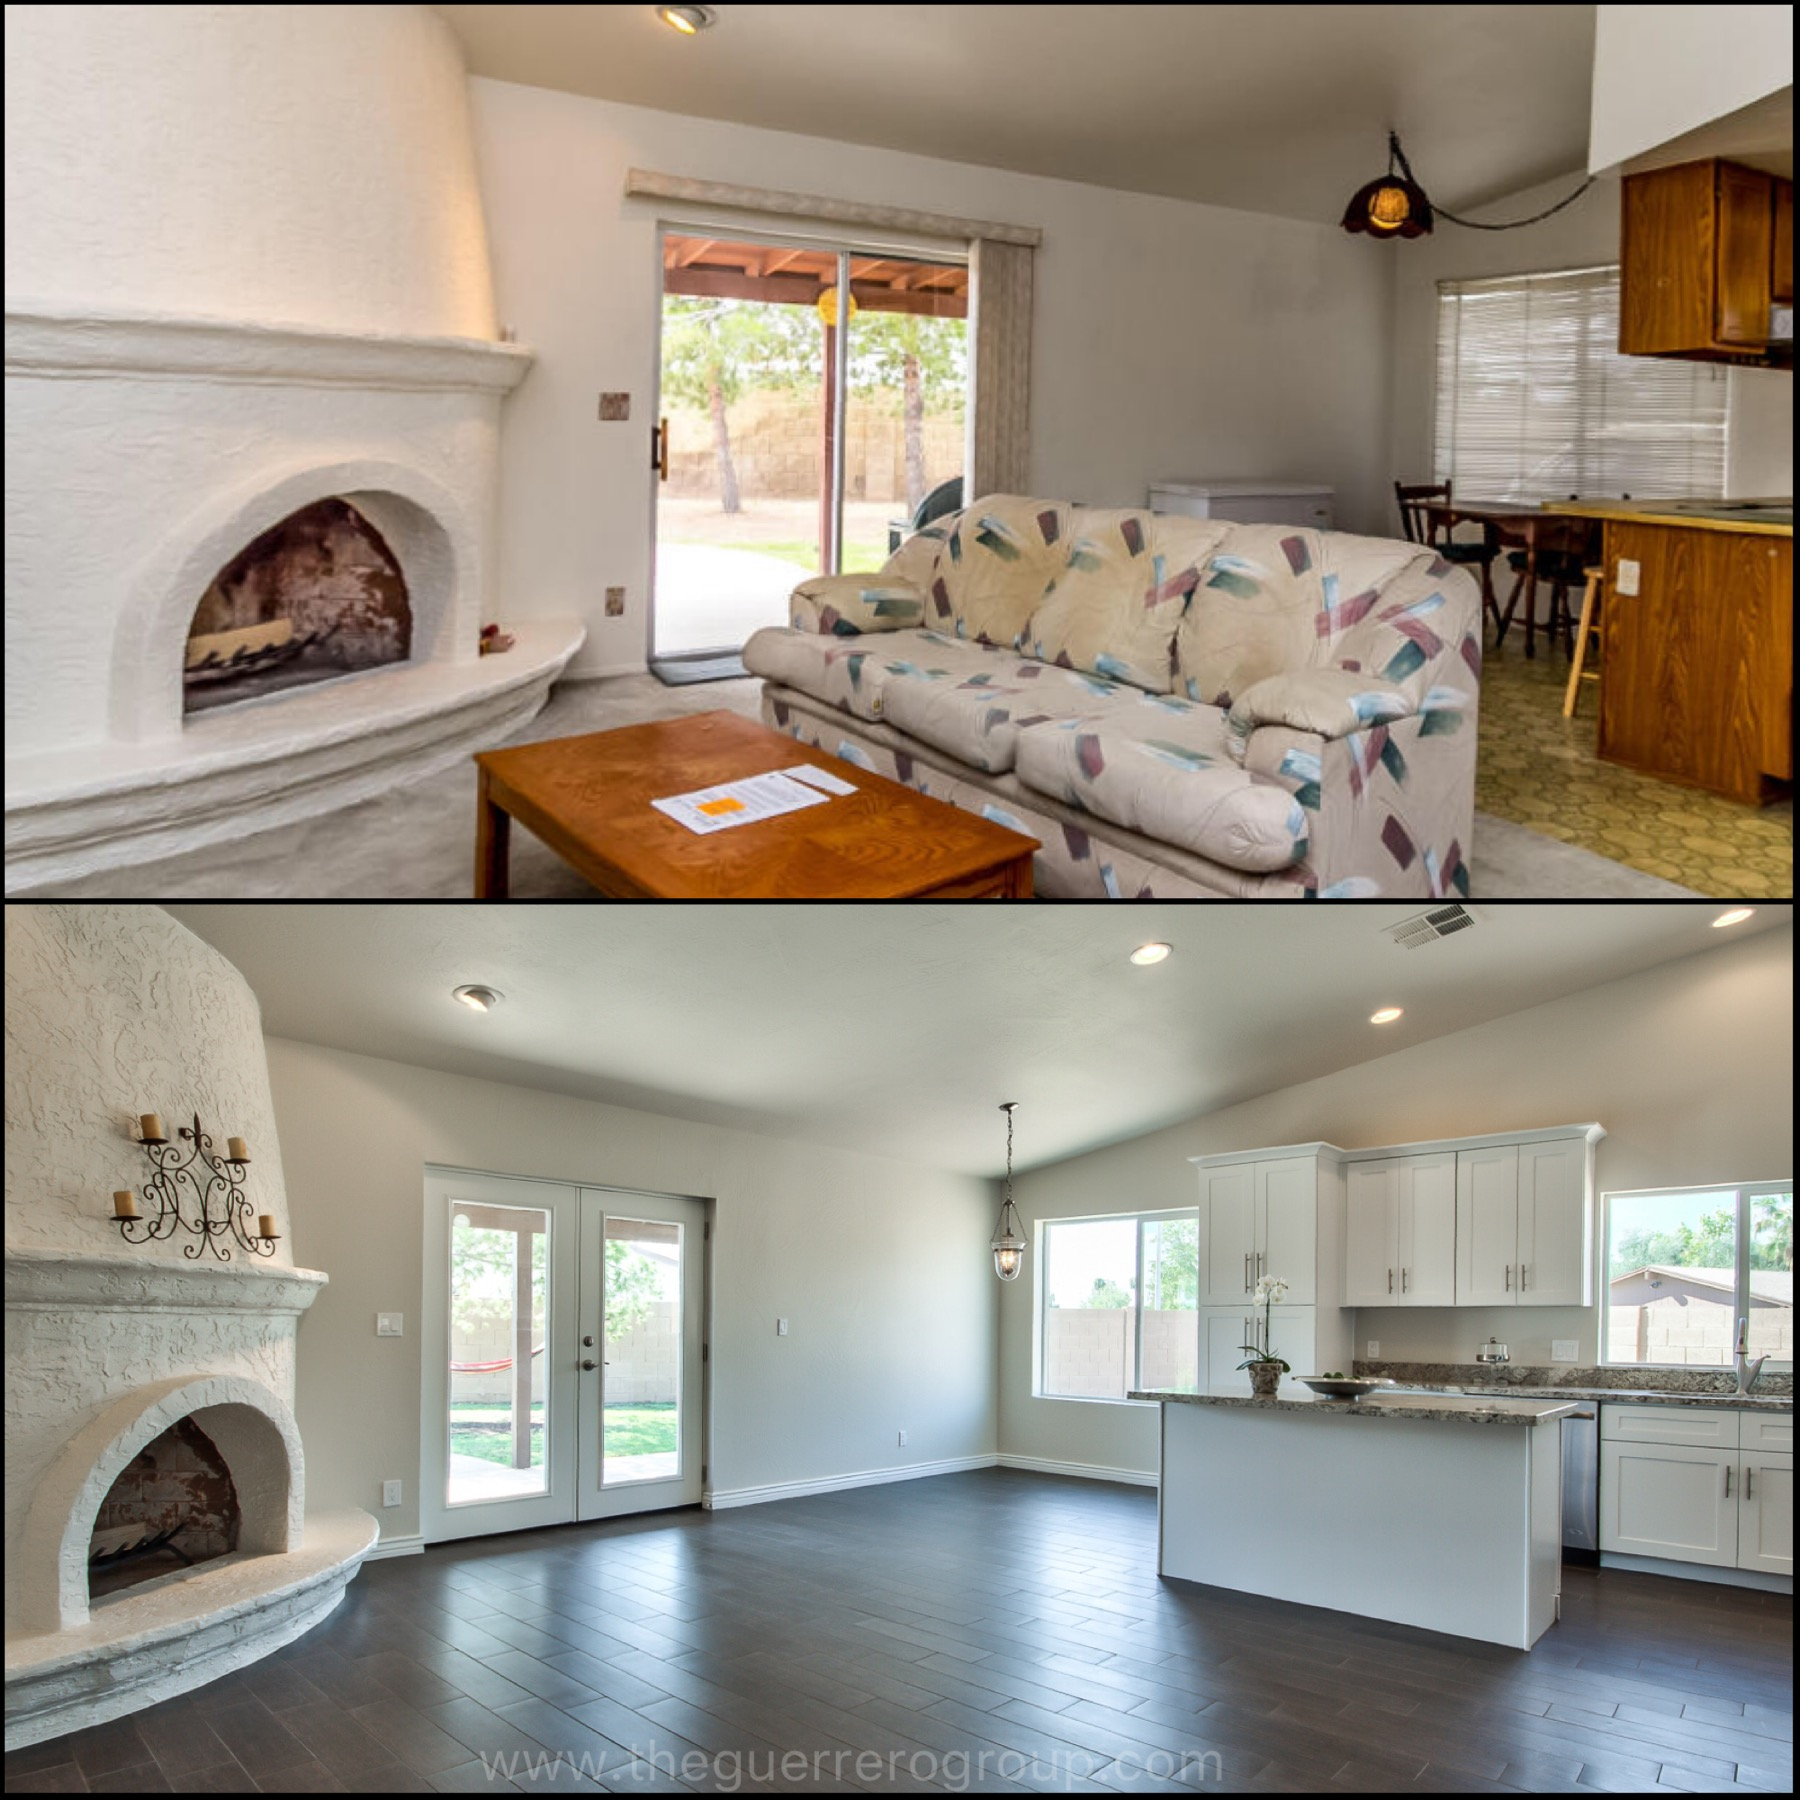 The Guerrero Group's latest Chandler Home Renovation in Tierra Dobson 85224